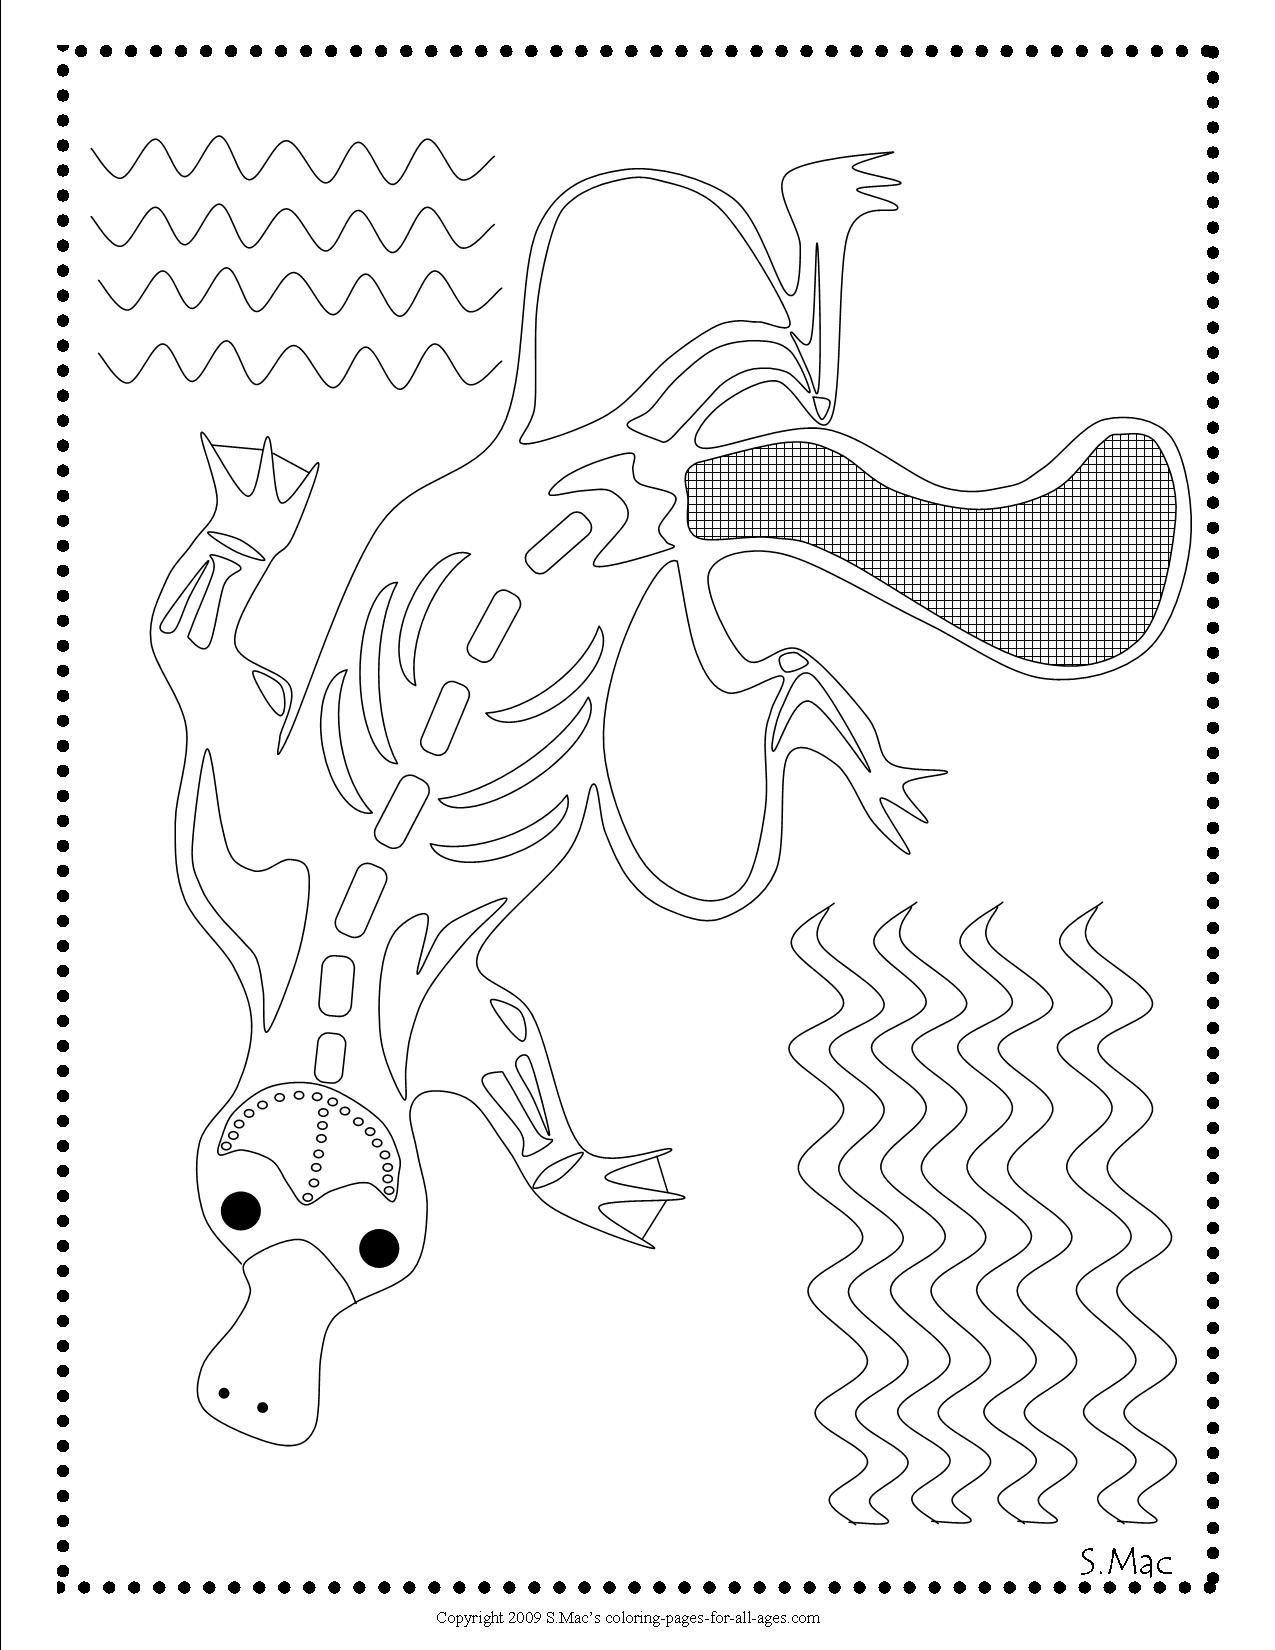 X Ray Art Coloring Pages Xray Art Aboriginal Art For Kids Colouring Art Therapy